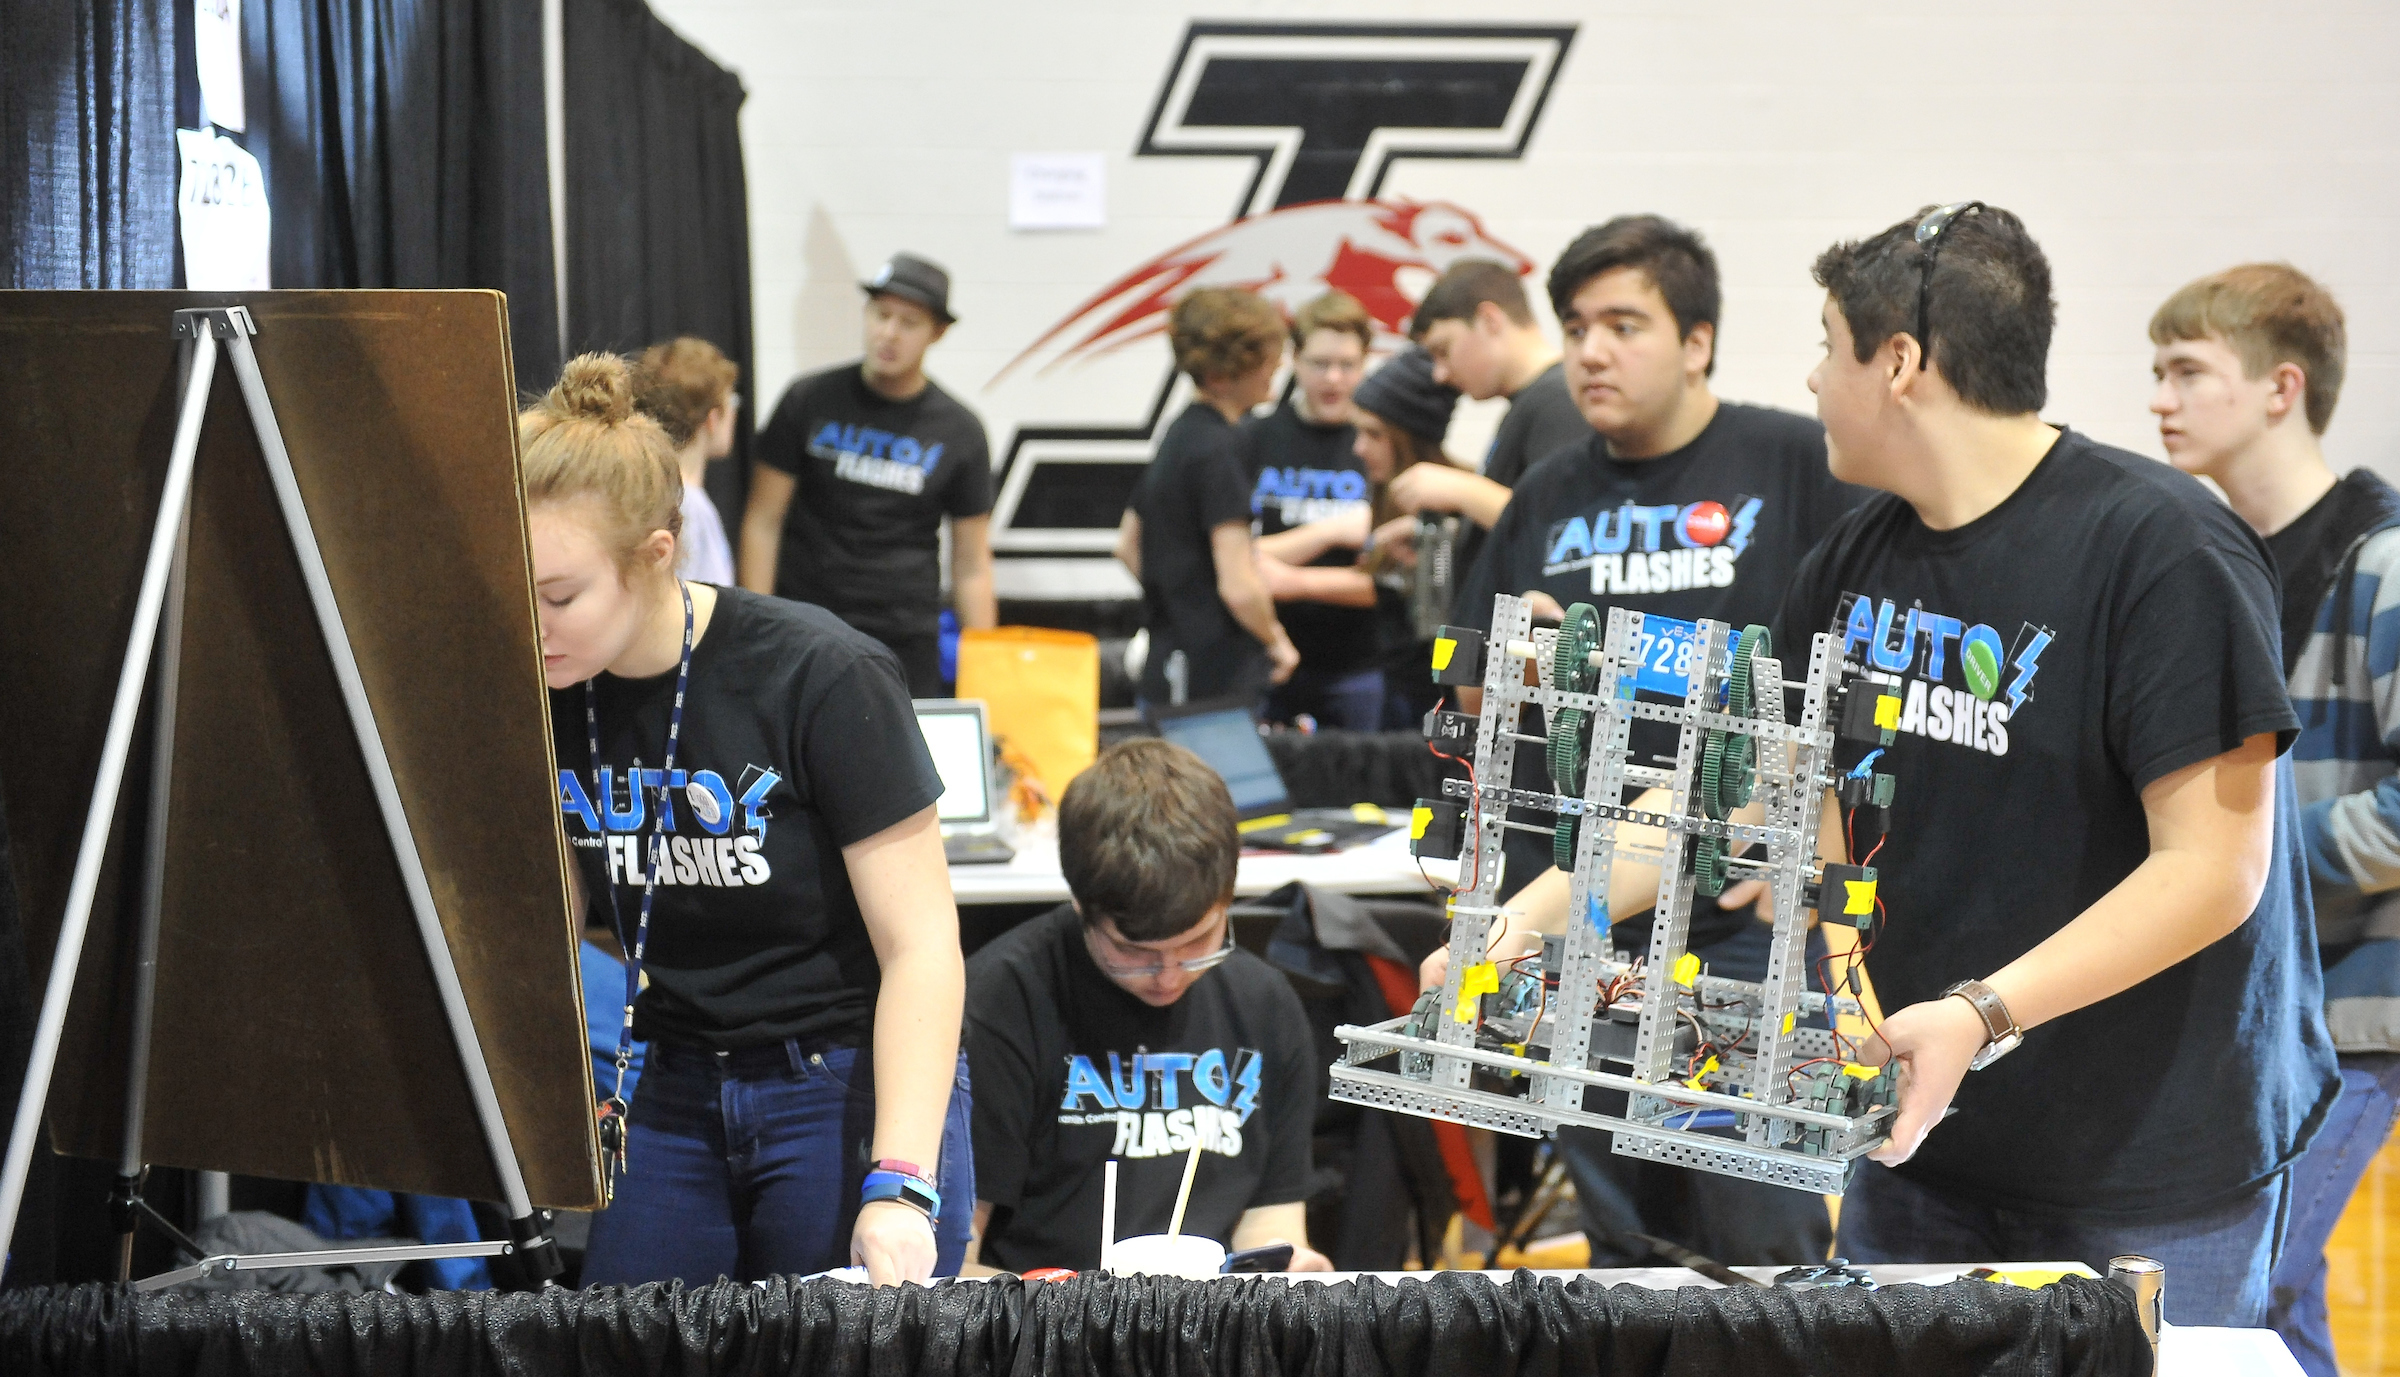 Campus robotics competition highlights STEM education efforts across